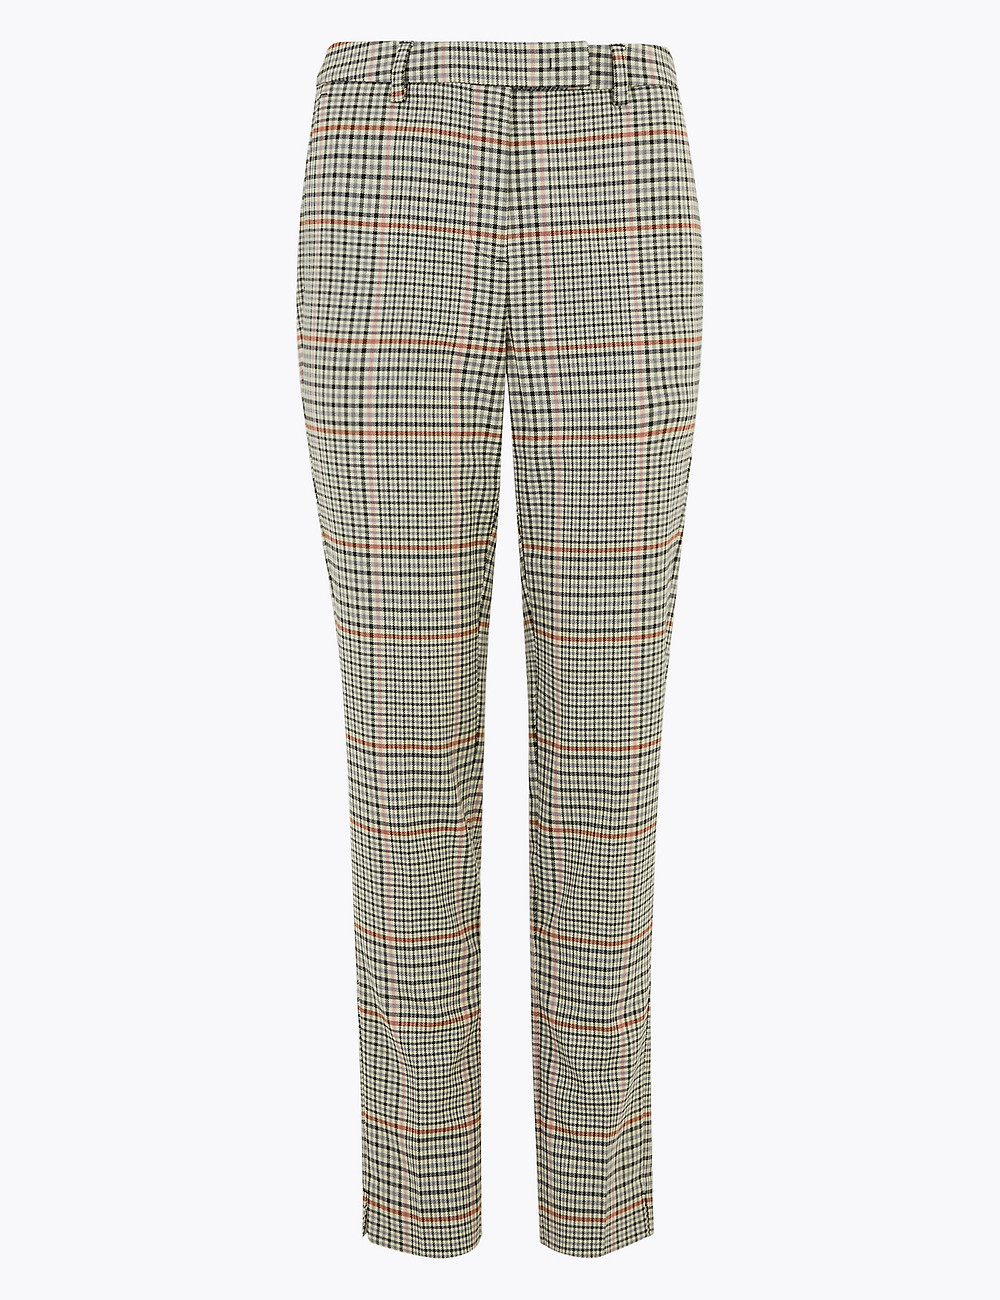 Checked Trouser, , The Image tree blog,,My Savvy Fashion Picks For Autumn/Winter 2020age Tree Blog